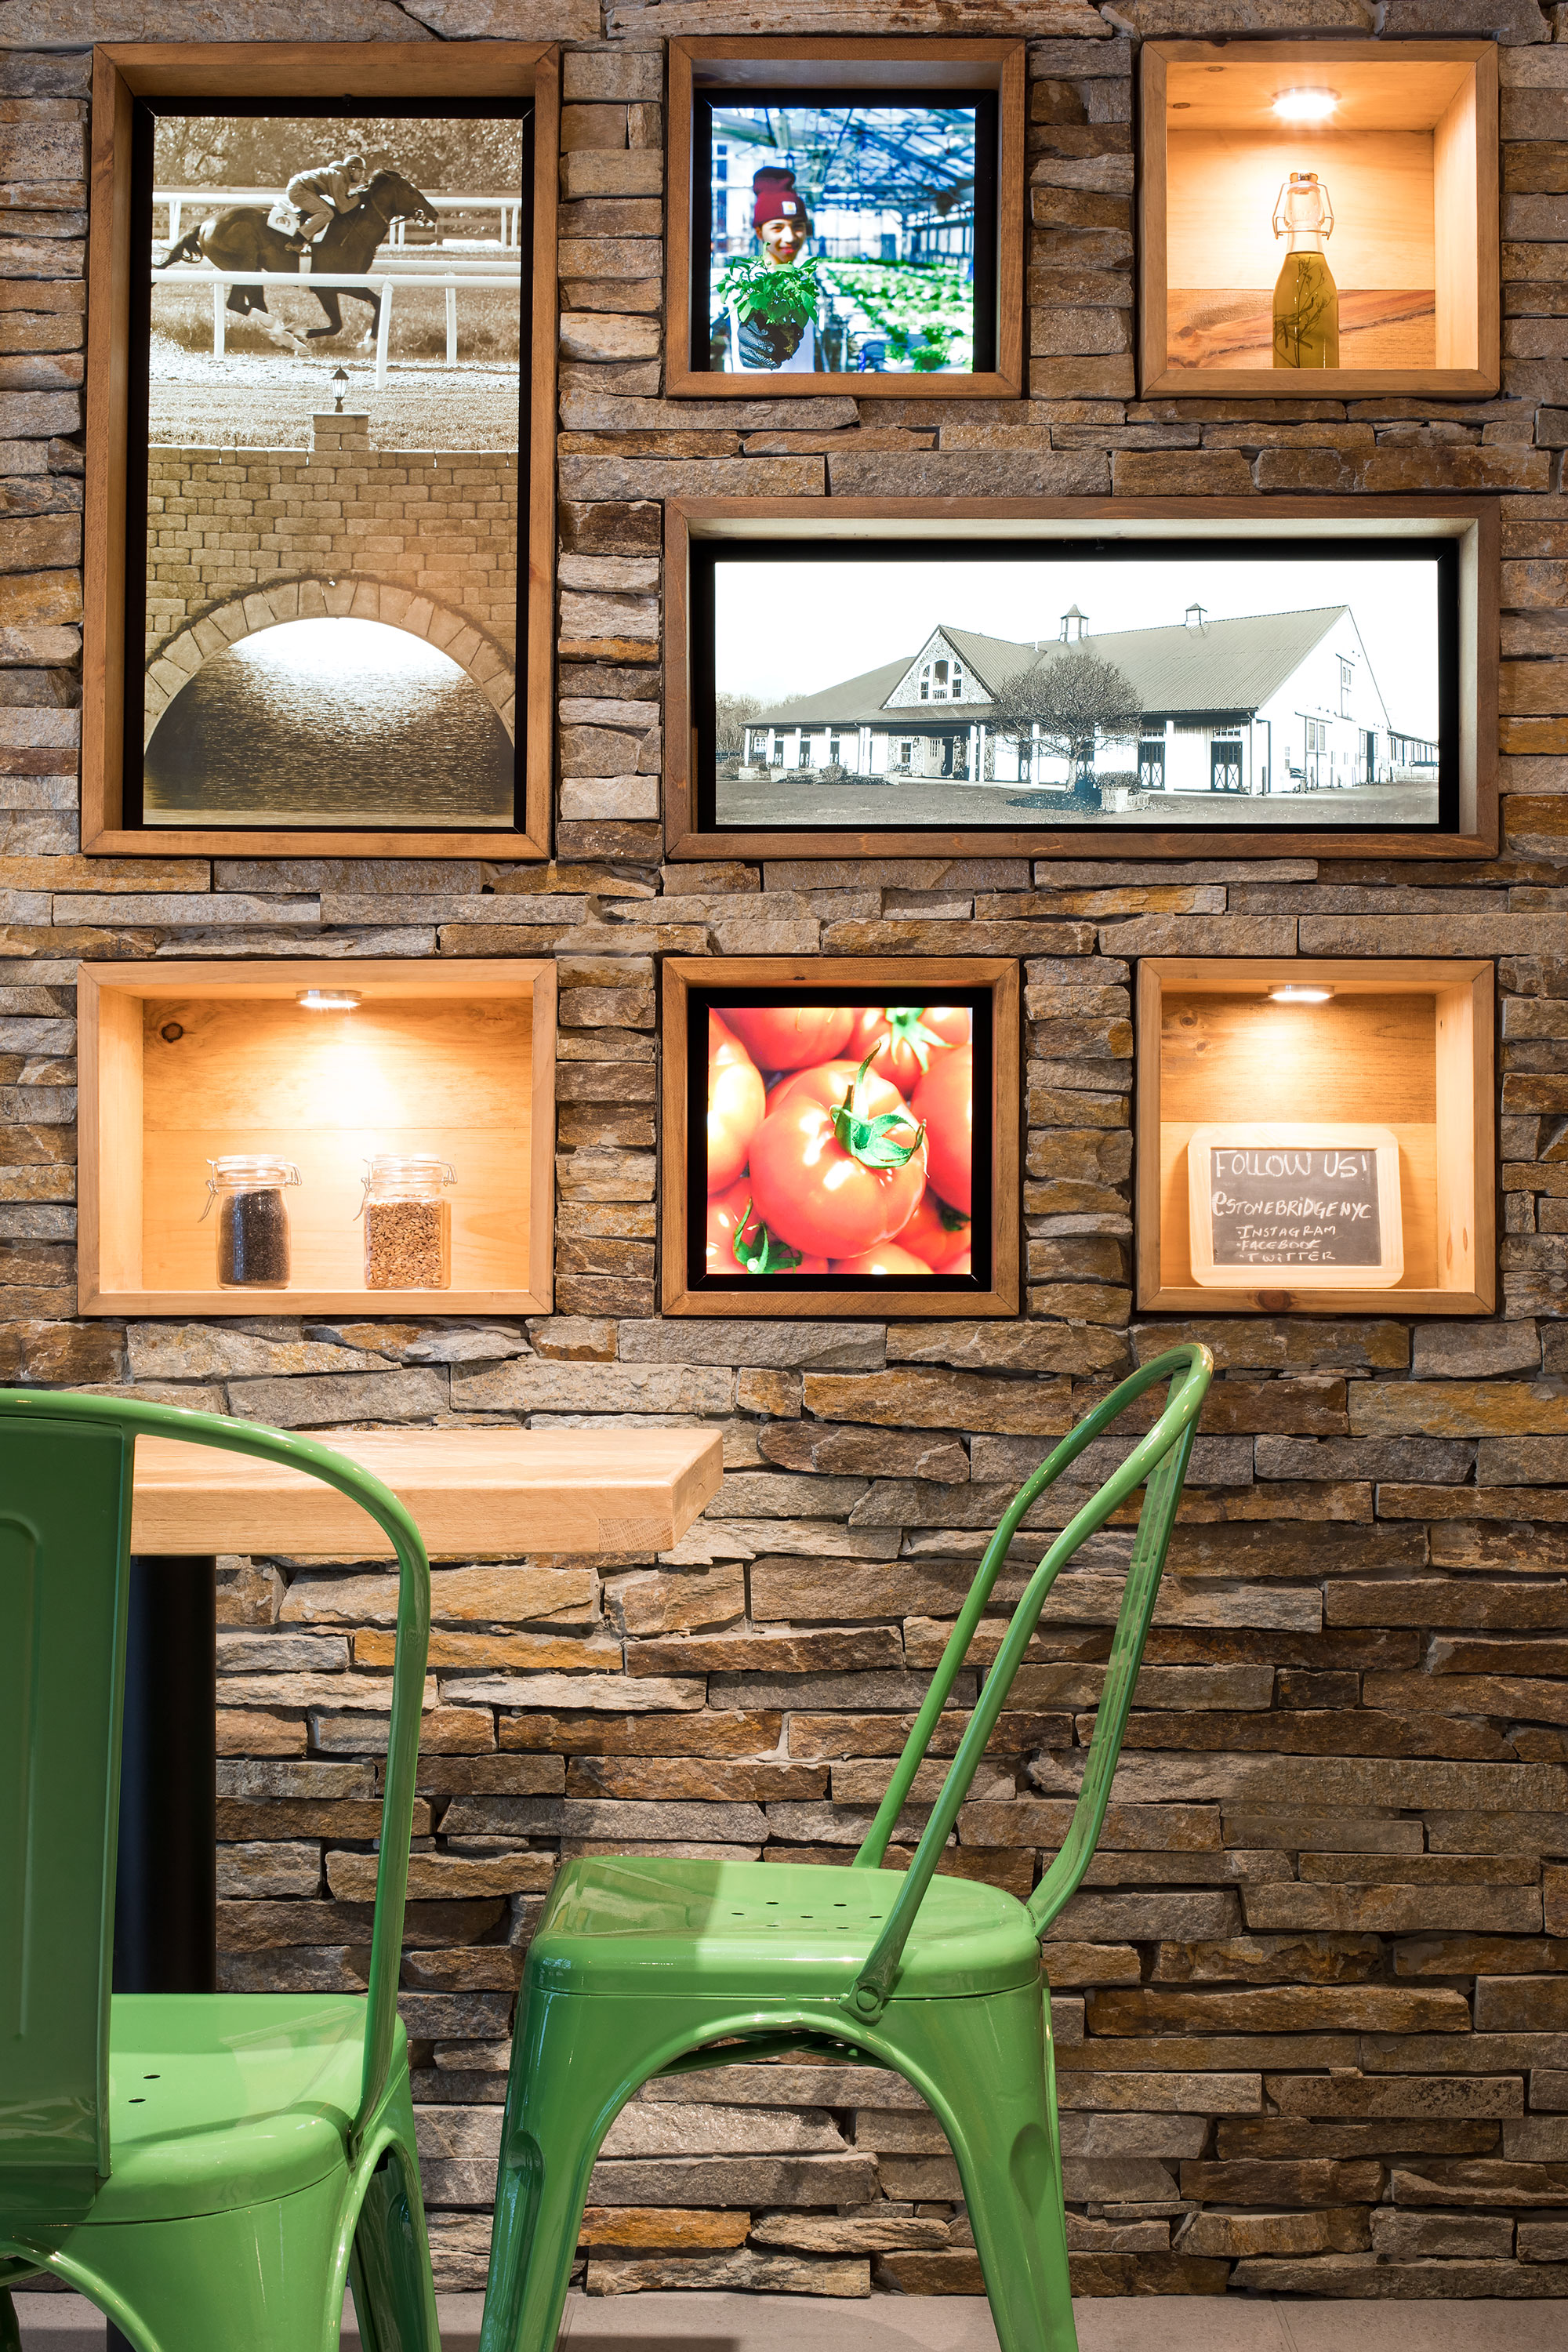 Stone Bridge Pizza & Salad - Entry Seating and Farm to Table Lightbox Wall